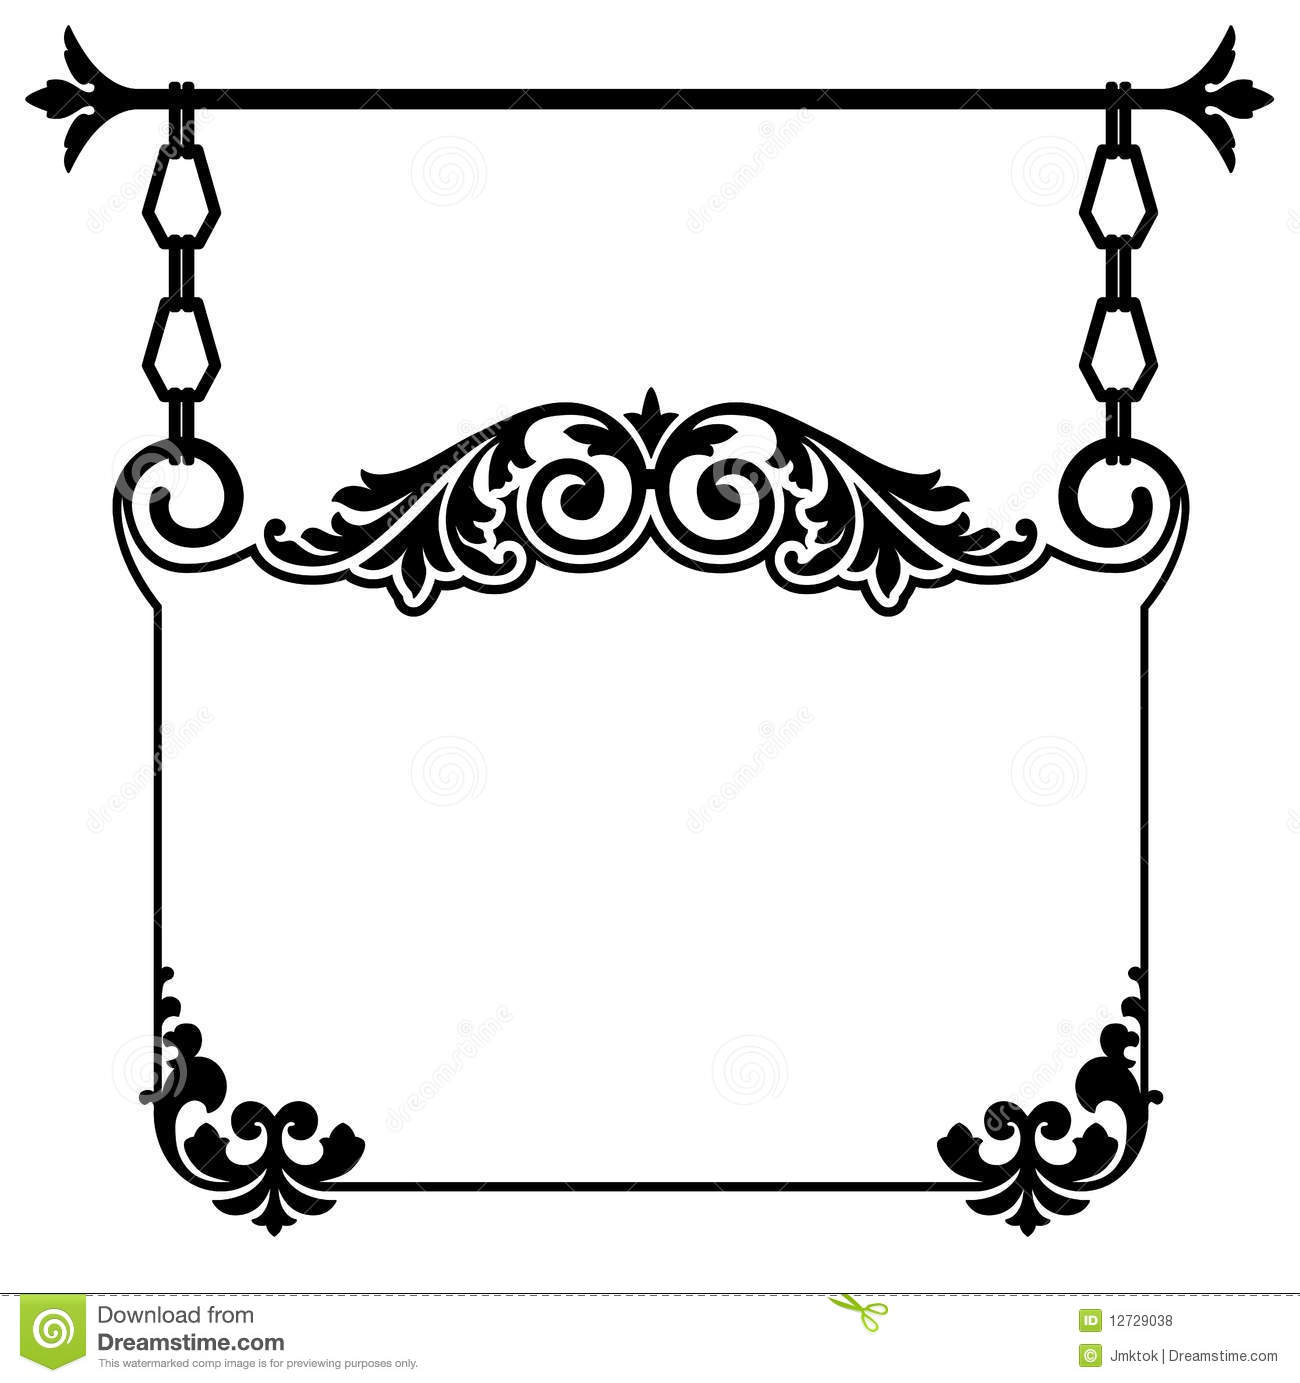 Clip Art Sign Clip Art vintage blank sign clipart kid store signs hanging sign